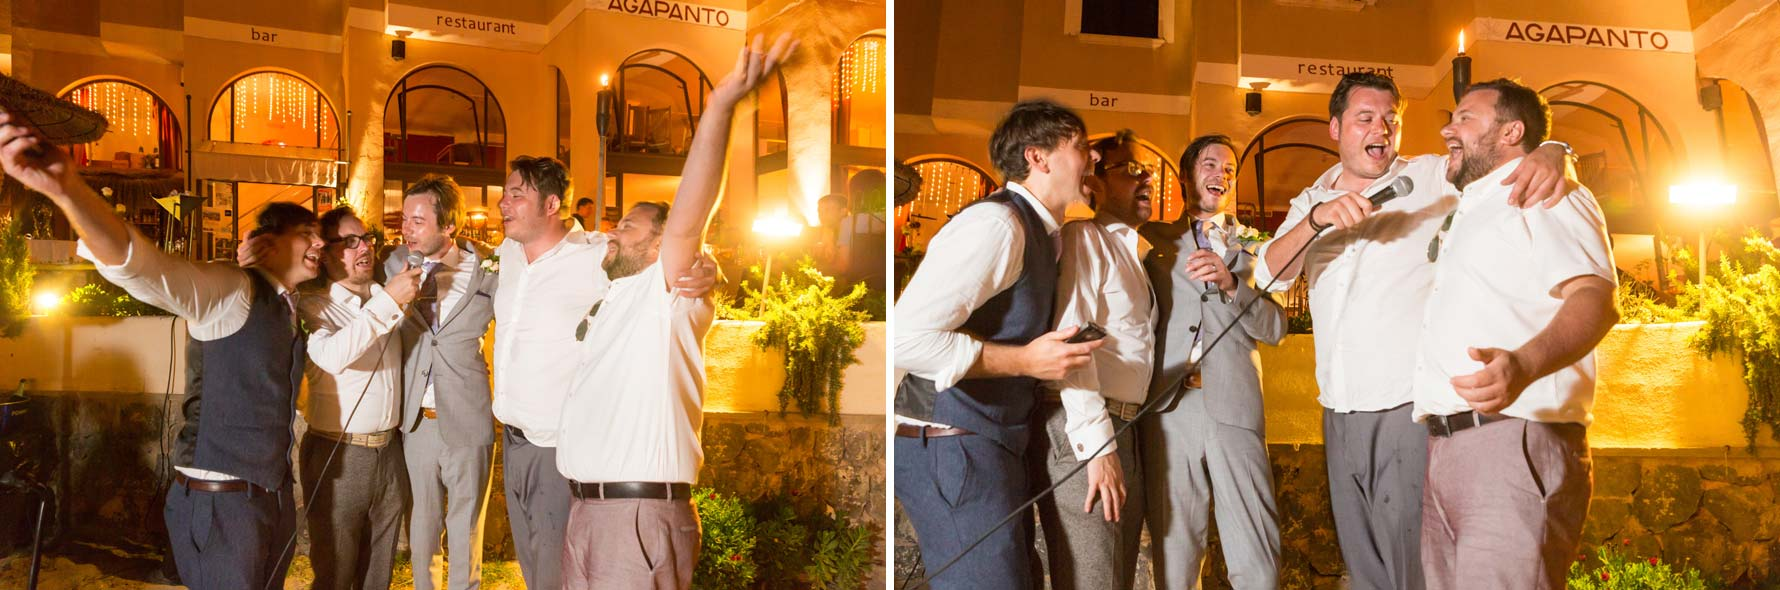 Mallorca wedding photographer in Port de Soller for amazing beach wedding at Agapanto_26